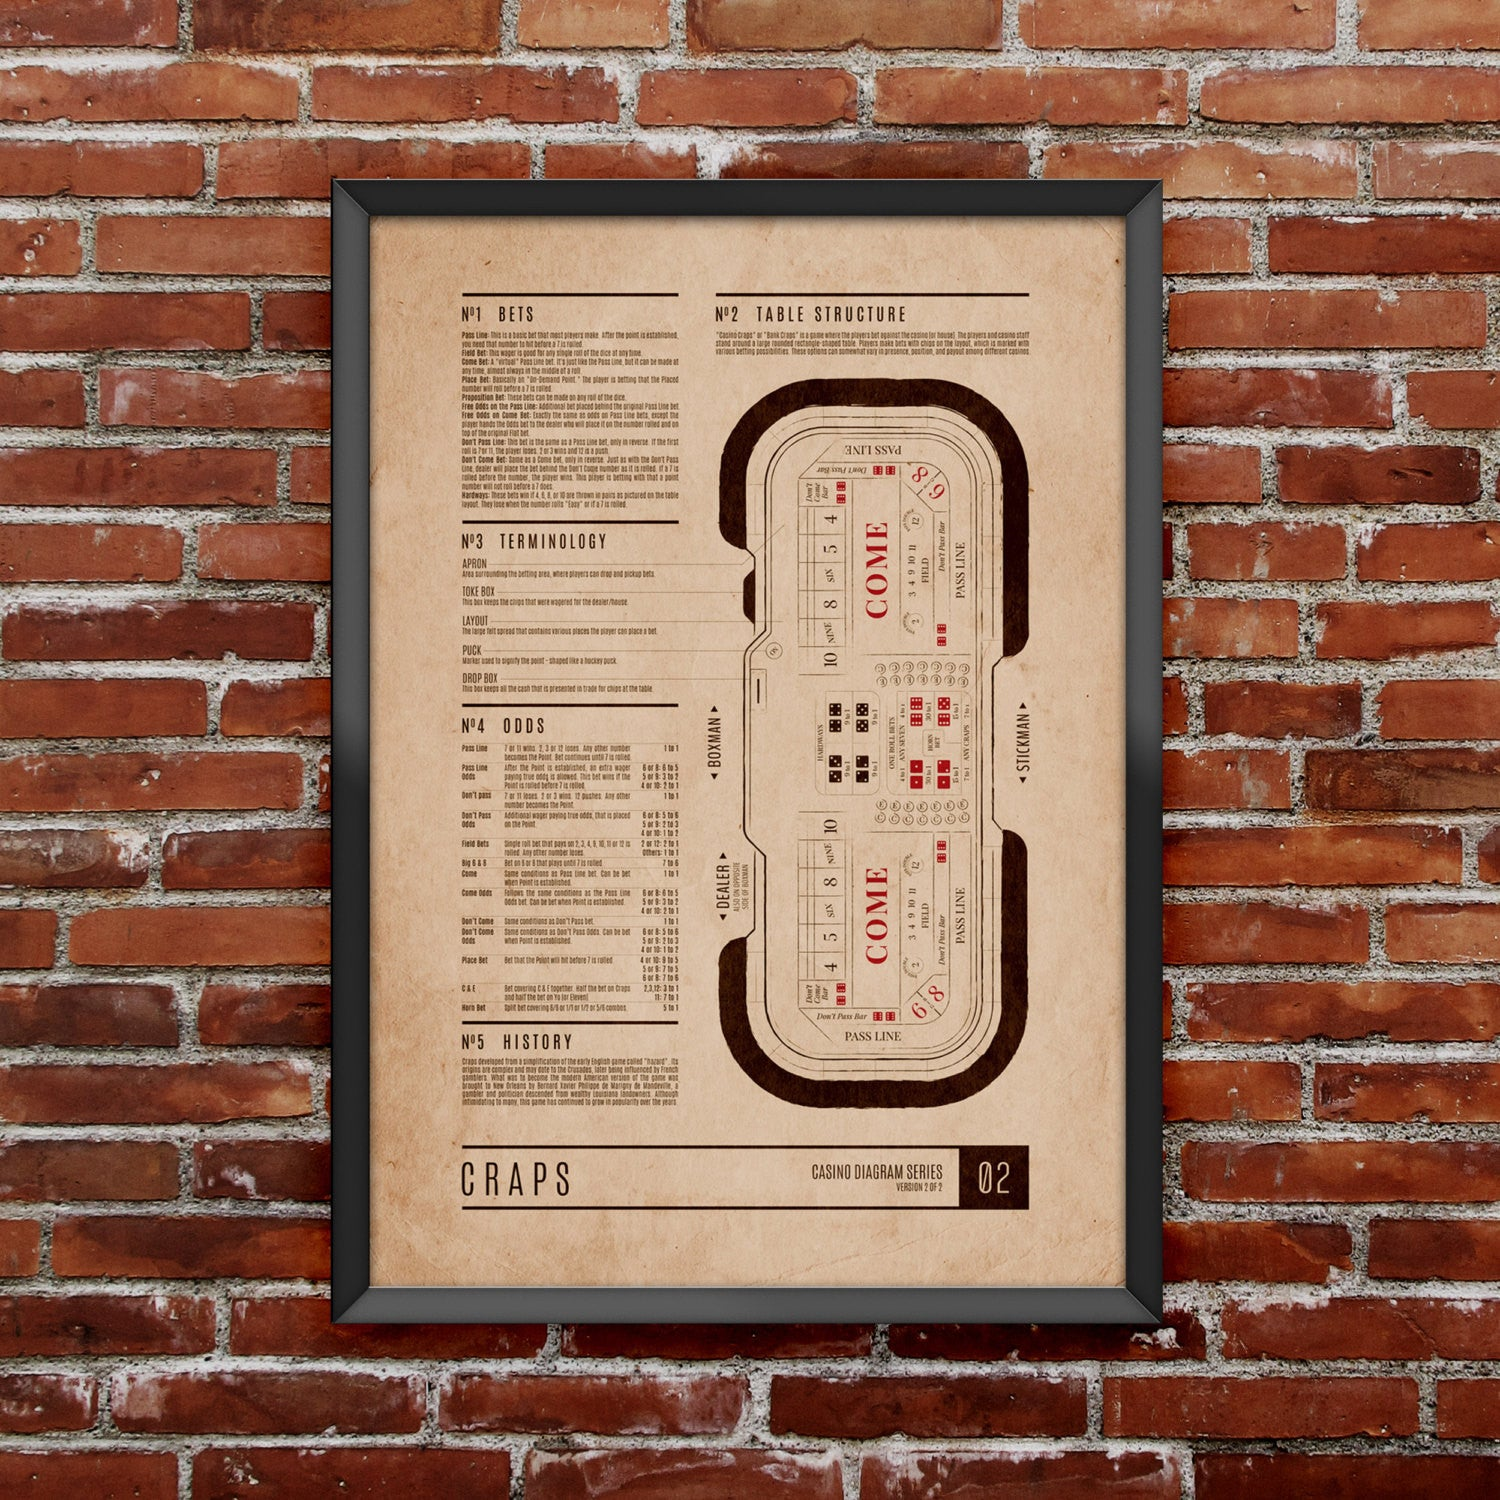 Craps Casino Diagram